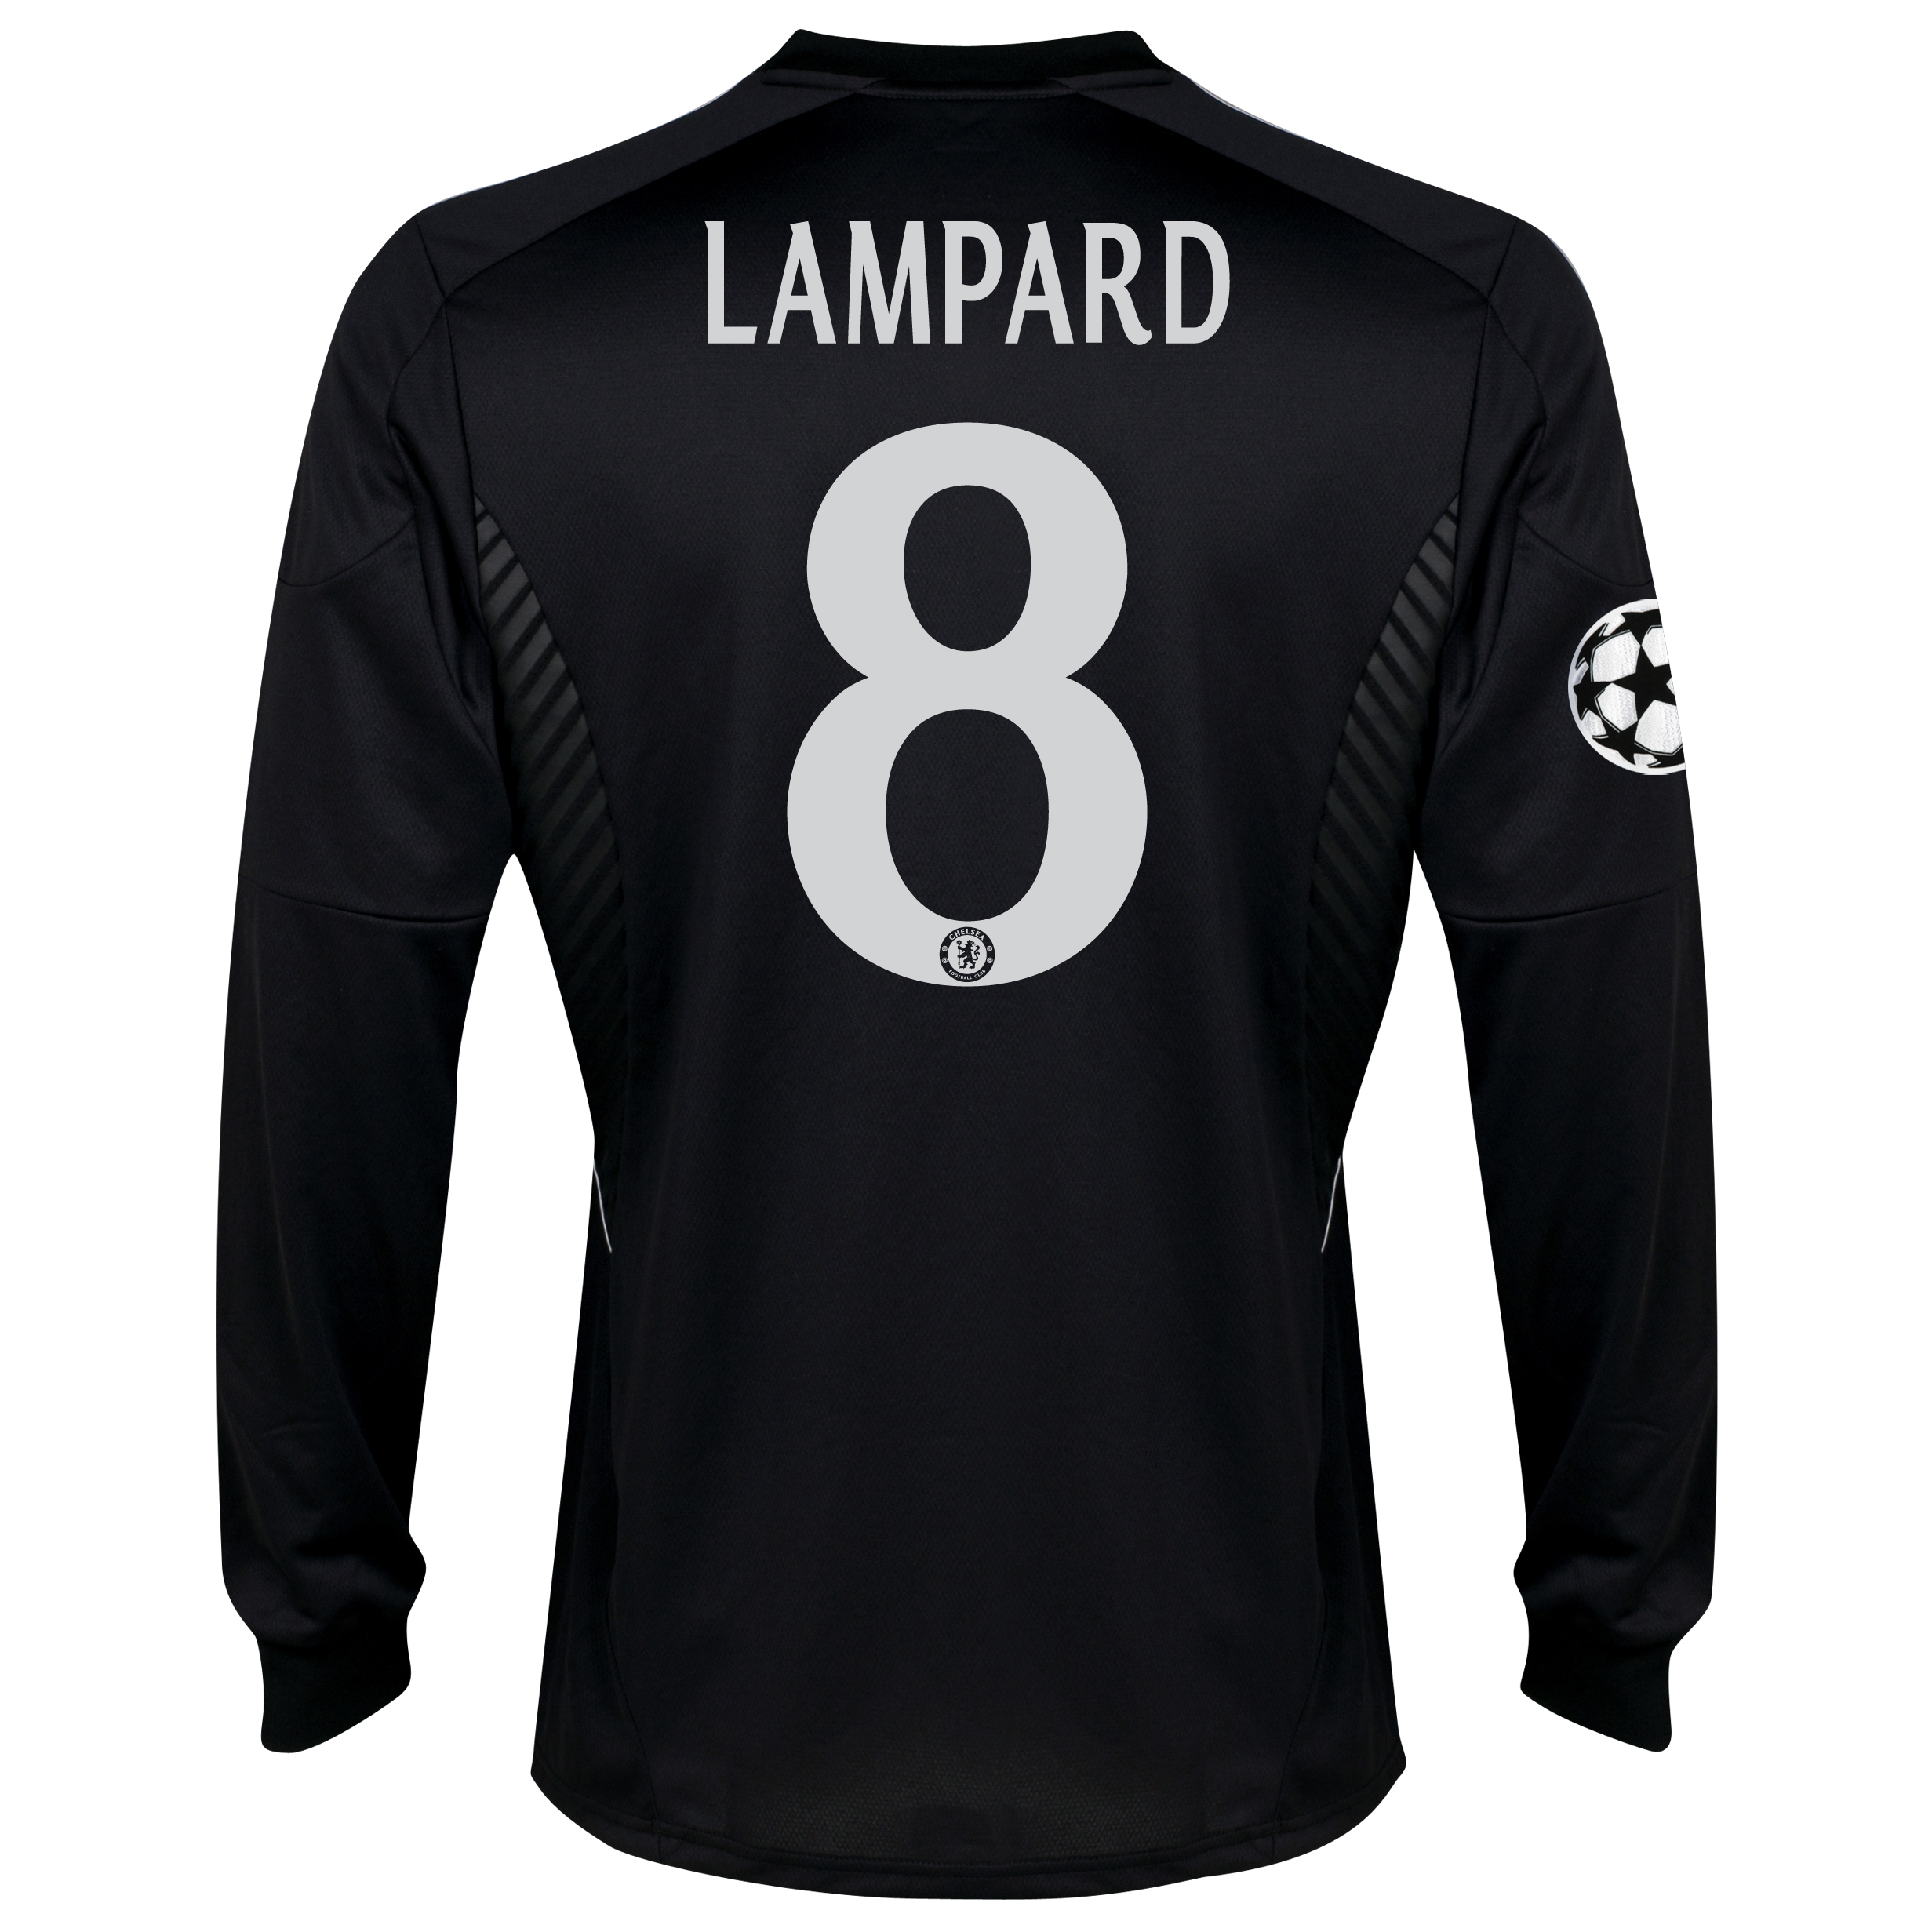 Chelsea UEFA Champions League Third Shirt 2013/14 -Long Sleeve - kids with Lampard 8 printing